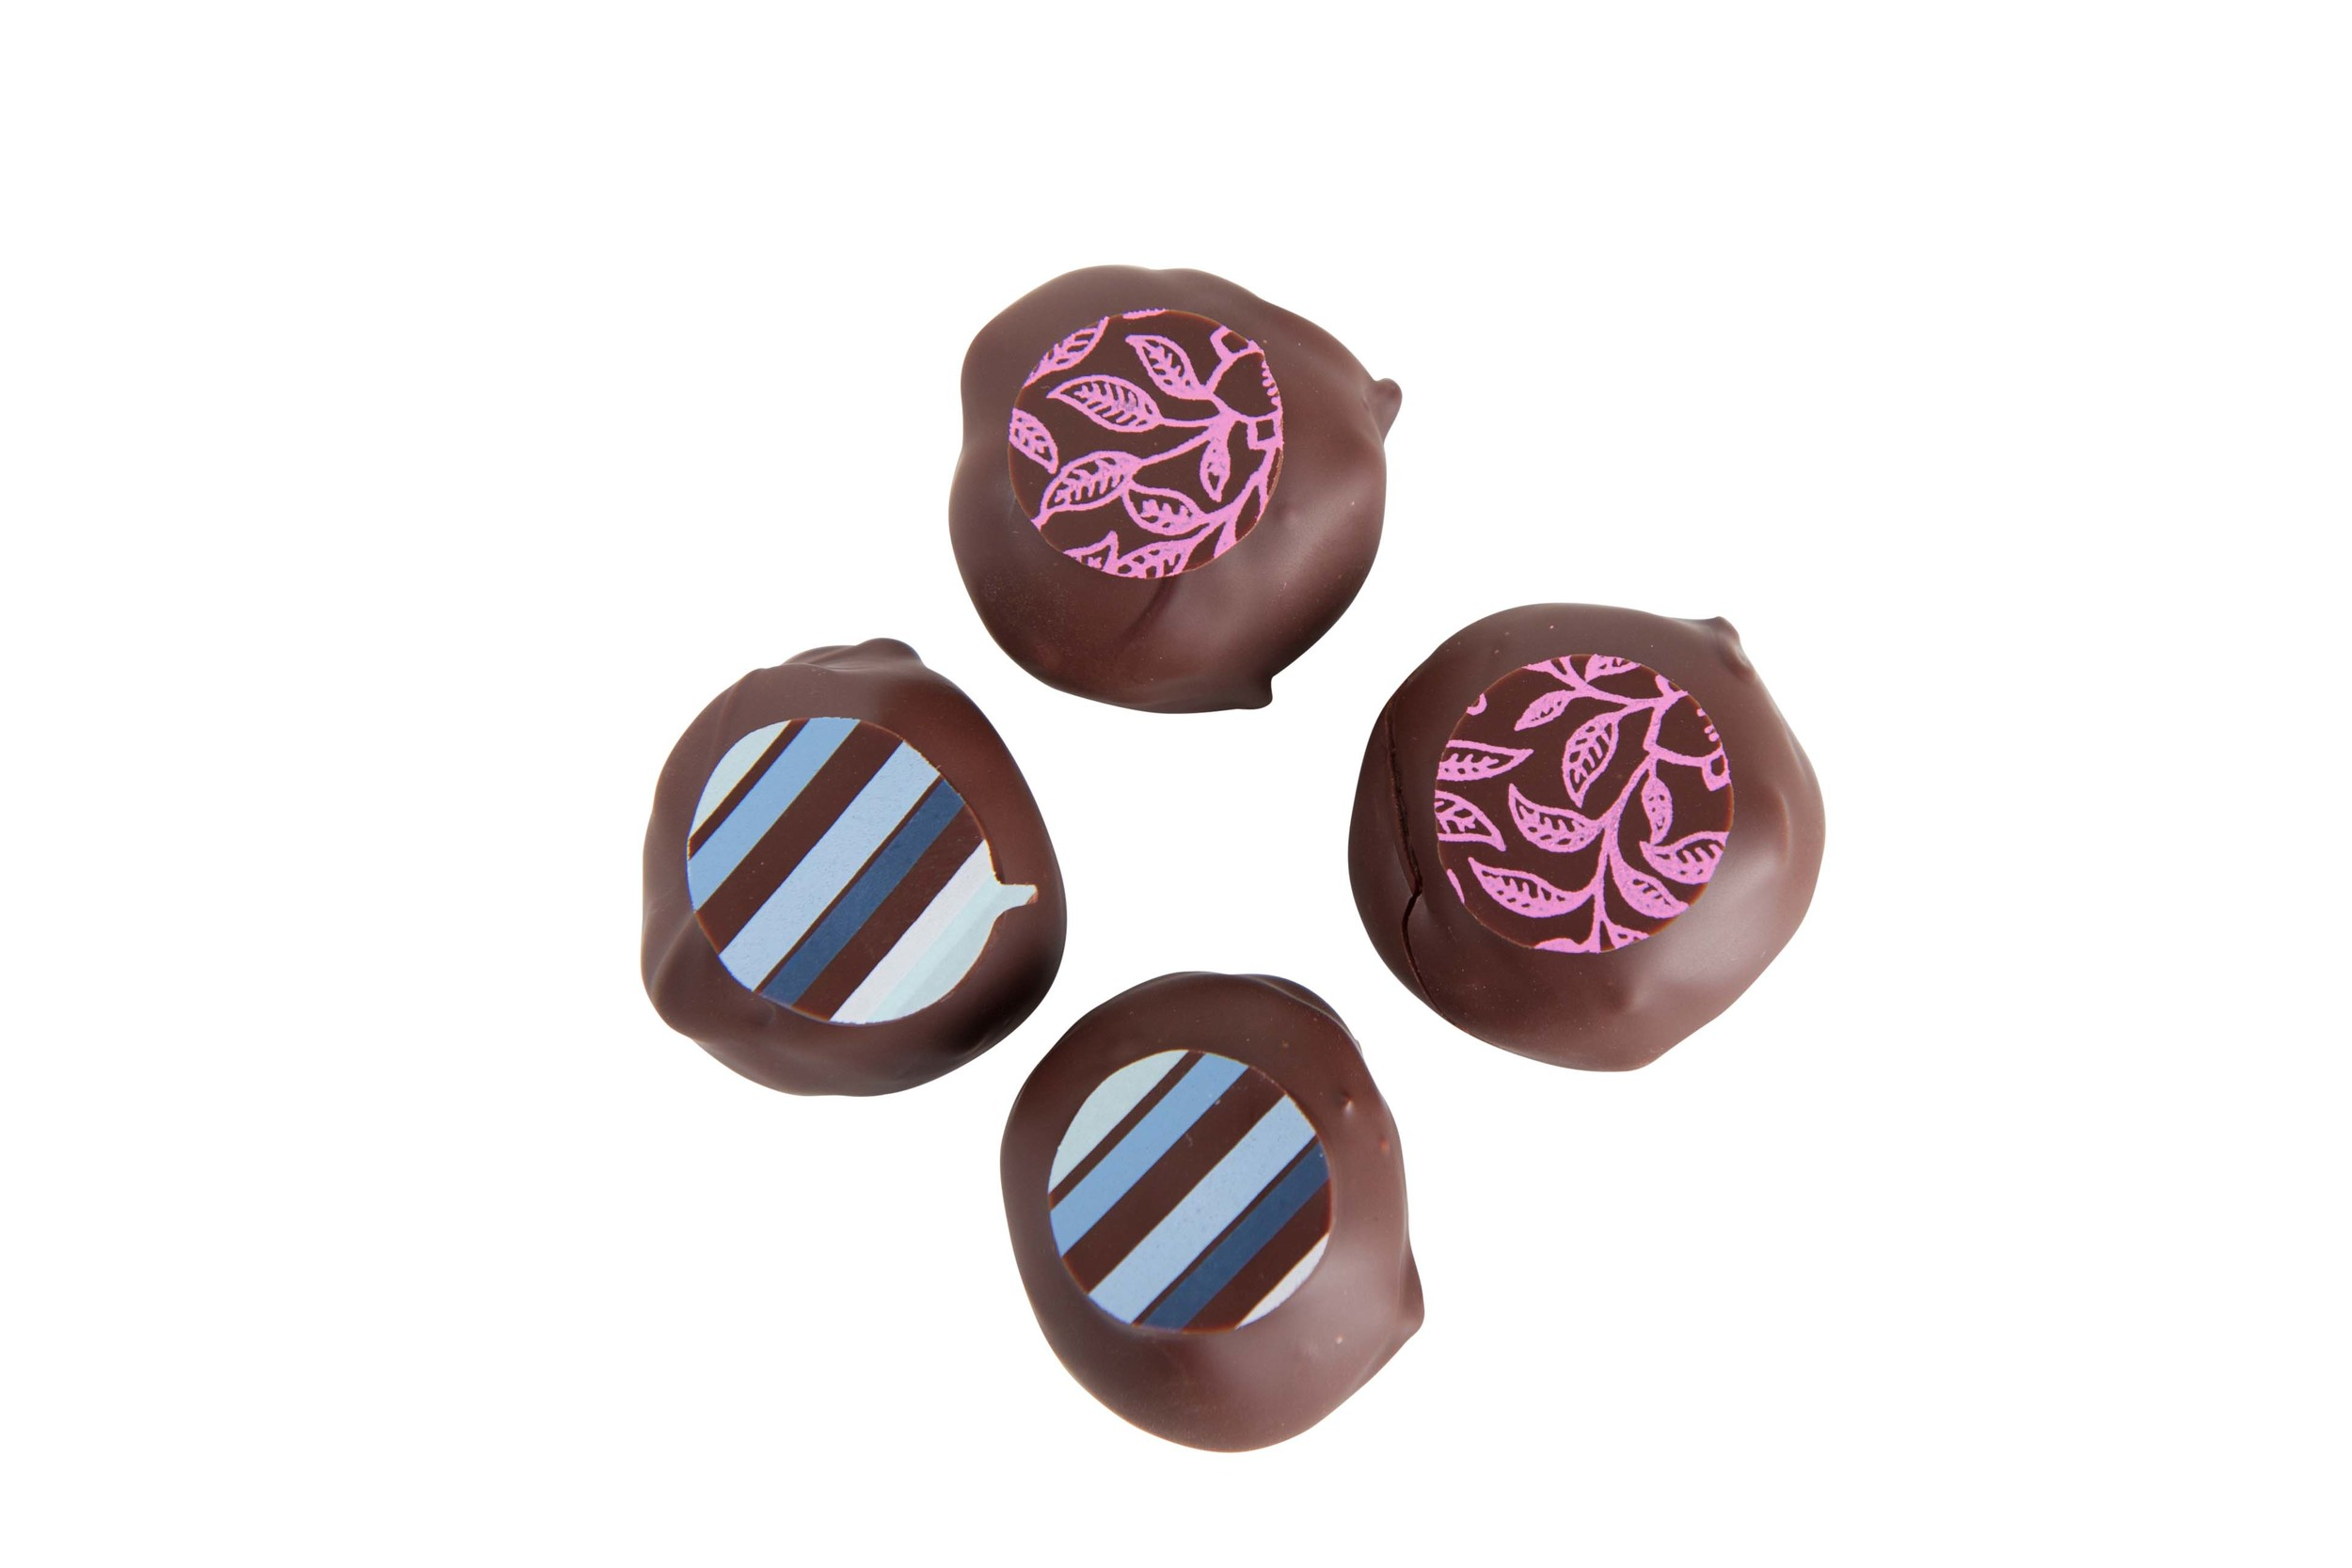 Interesting colors and designs, right on the chocolates.